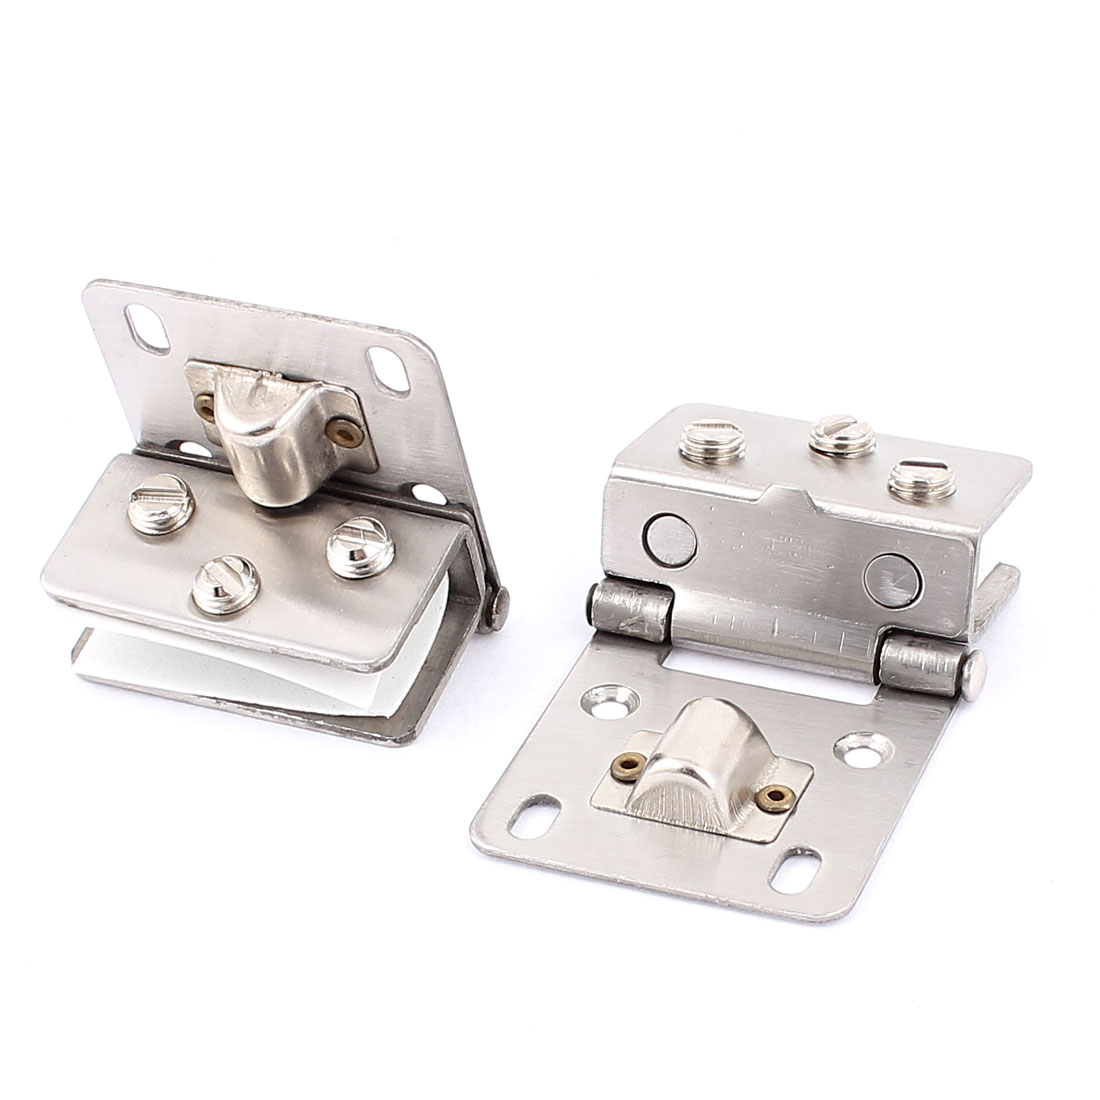 10mm Thickness Adjustable Metal Glass Door Hinges Silver Tone 2pcs